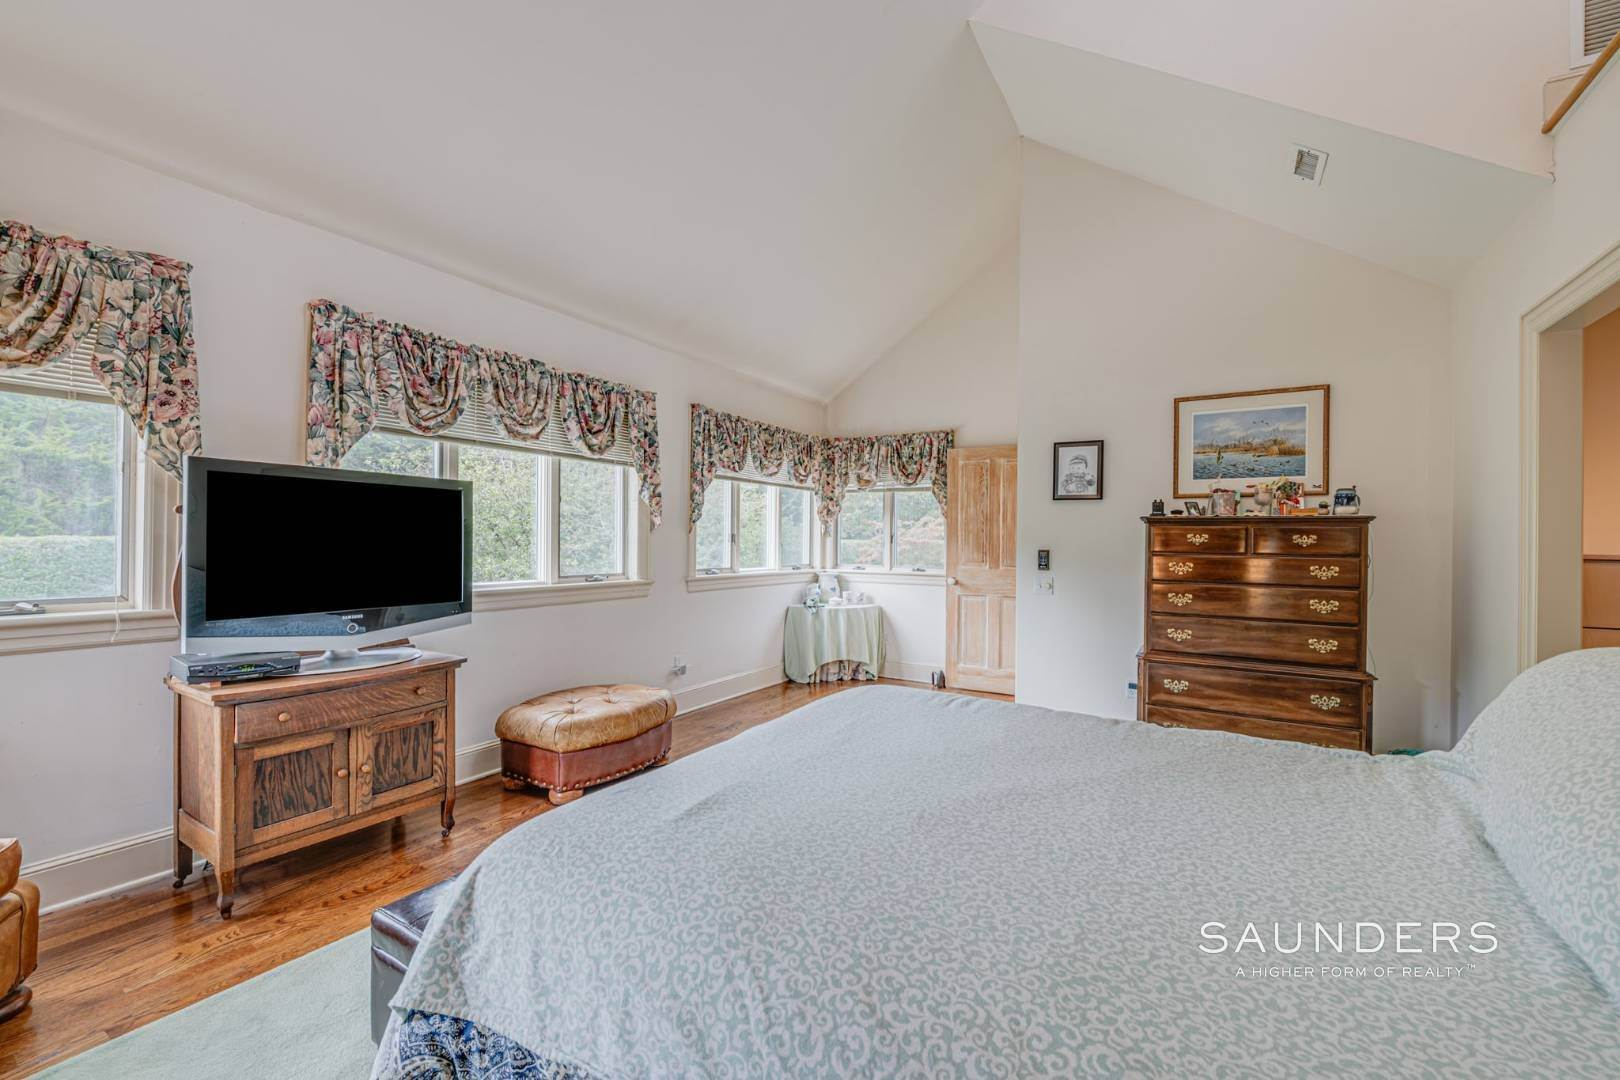 18. Single Family Homes for Sale at Prime 2.8 Acres In Sagaponack Village W/ Barn & Room For Tennis 44 Greenleaf Lane, Sagaponack Village, Southampton Town, NY 11962